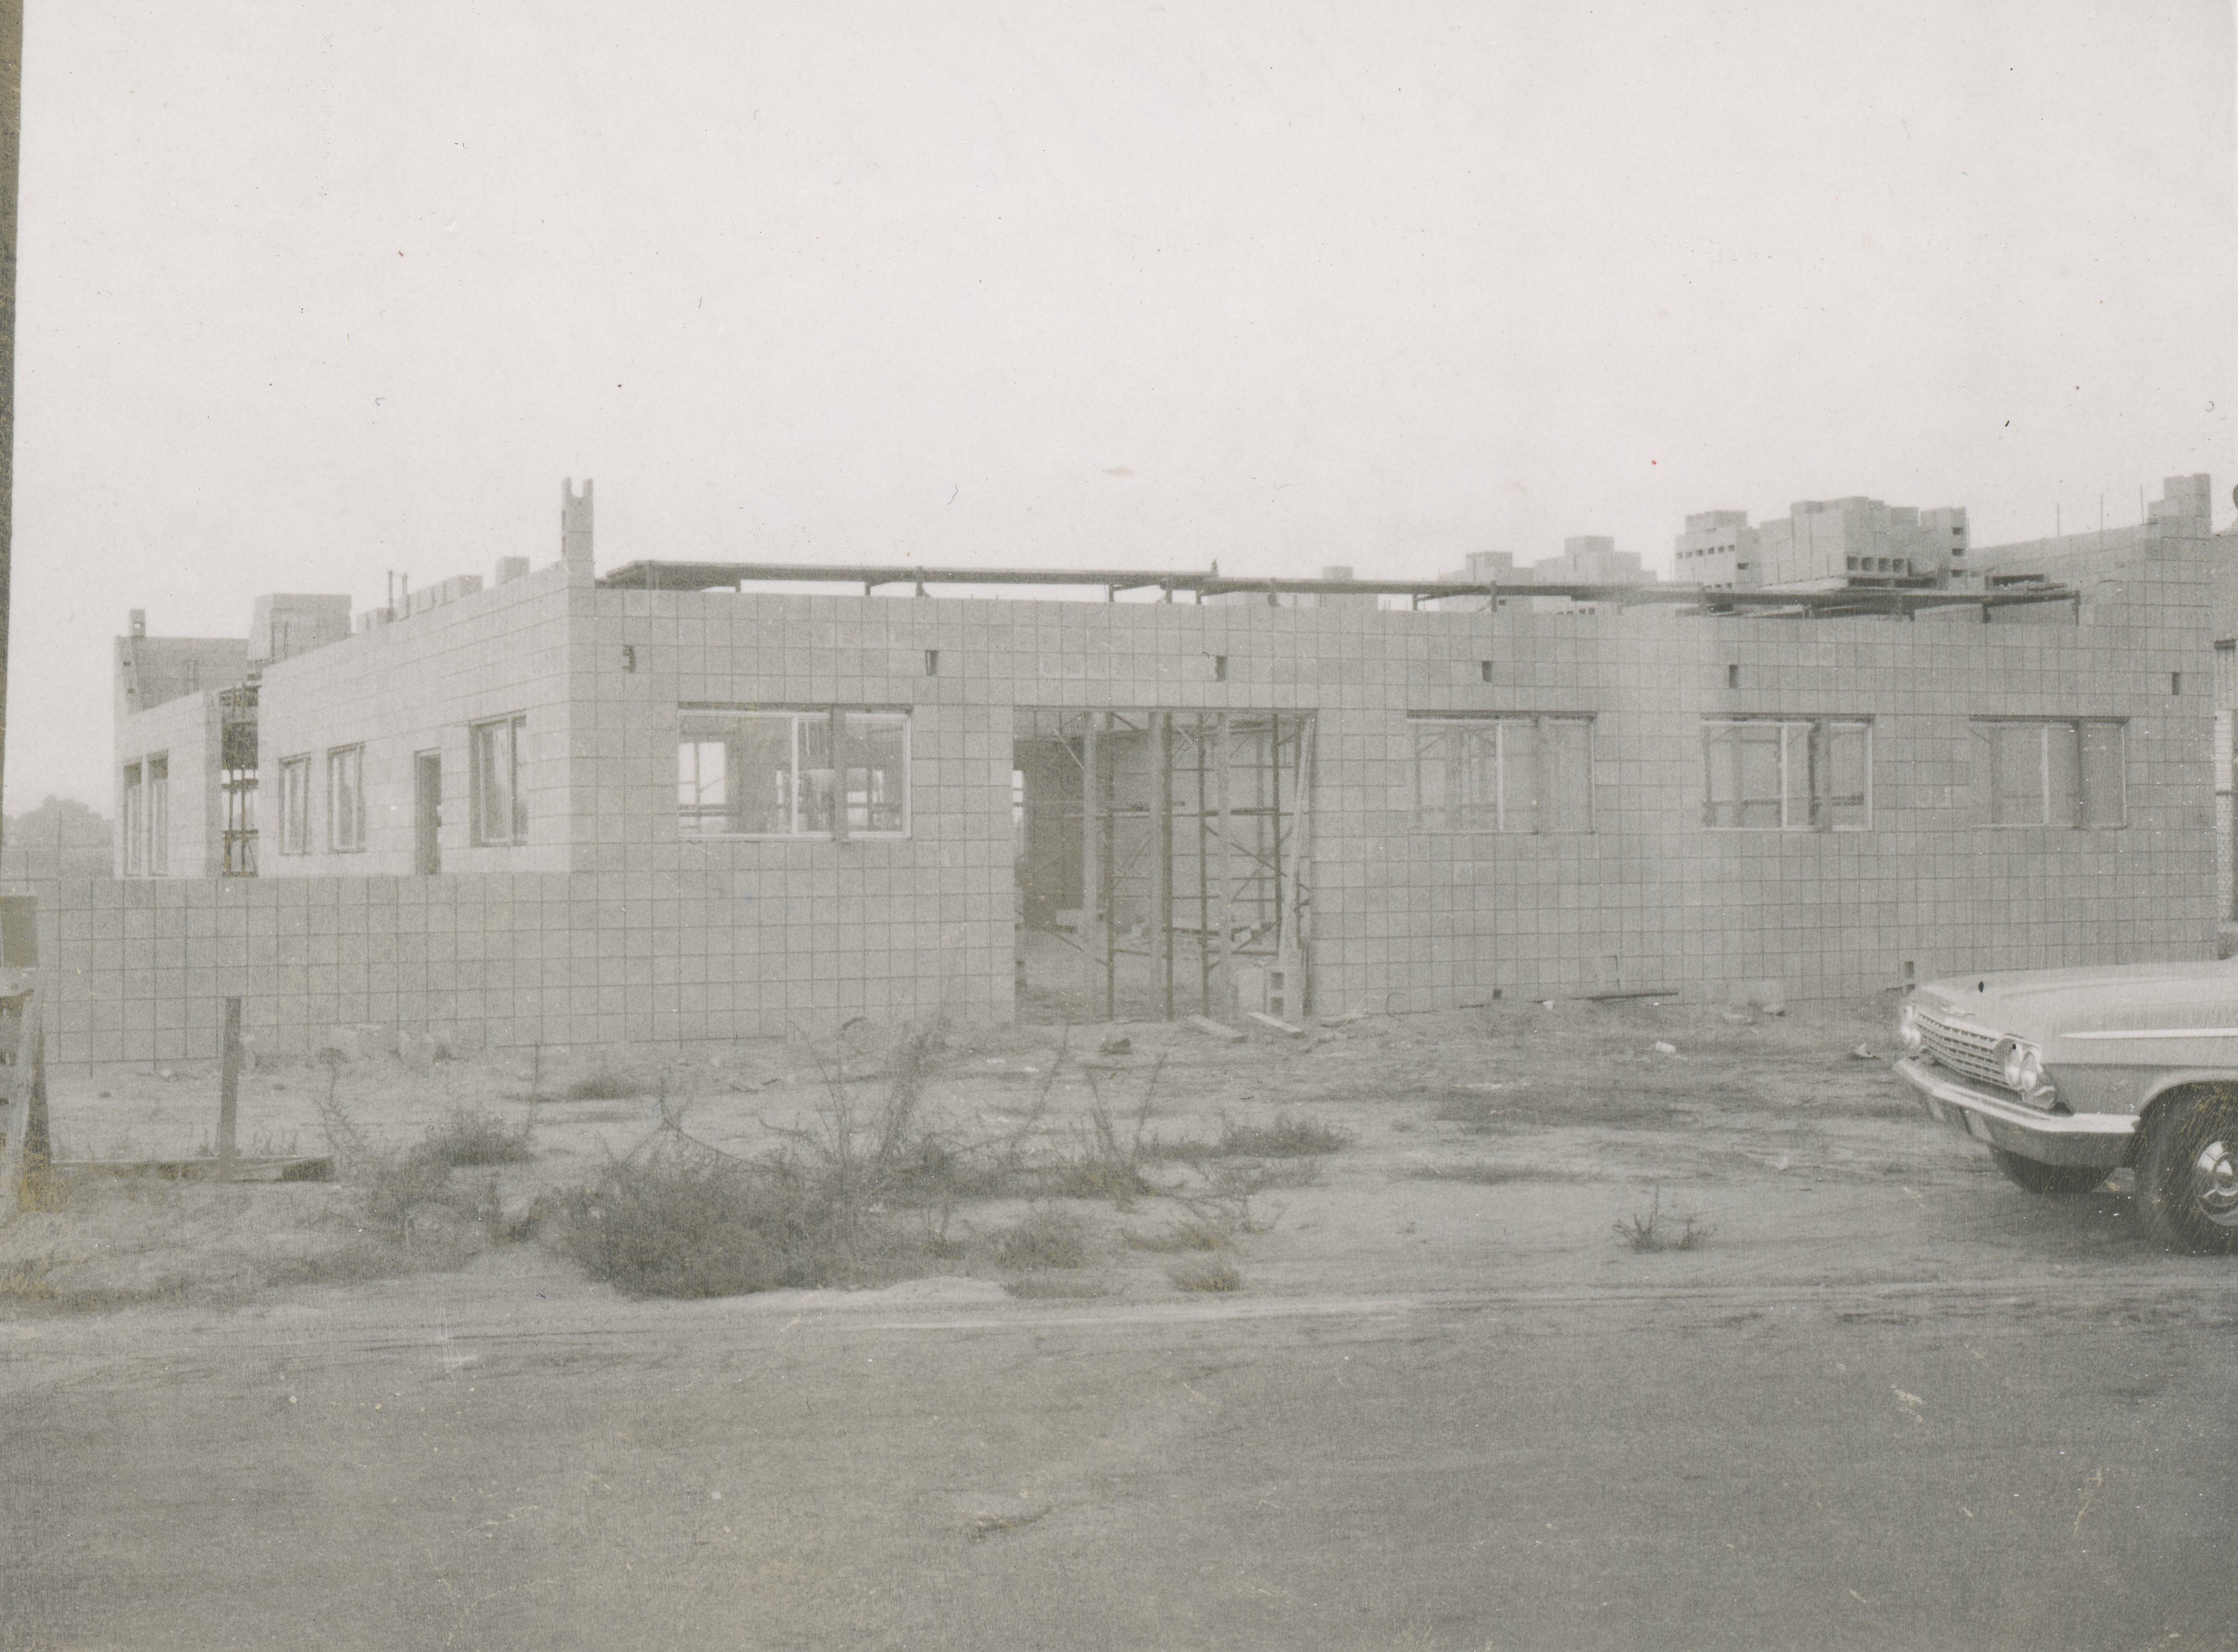 Keith Company 1962 Building Construction